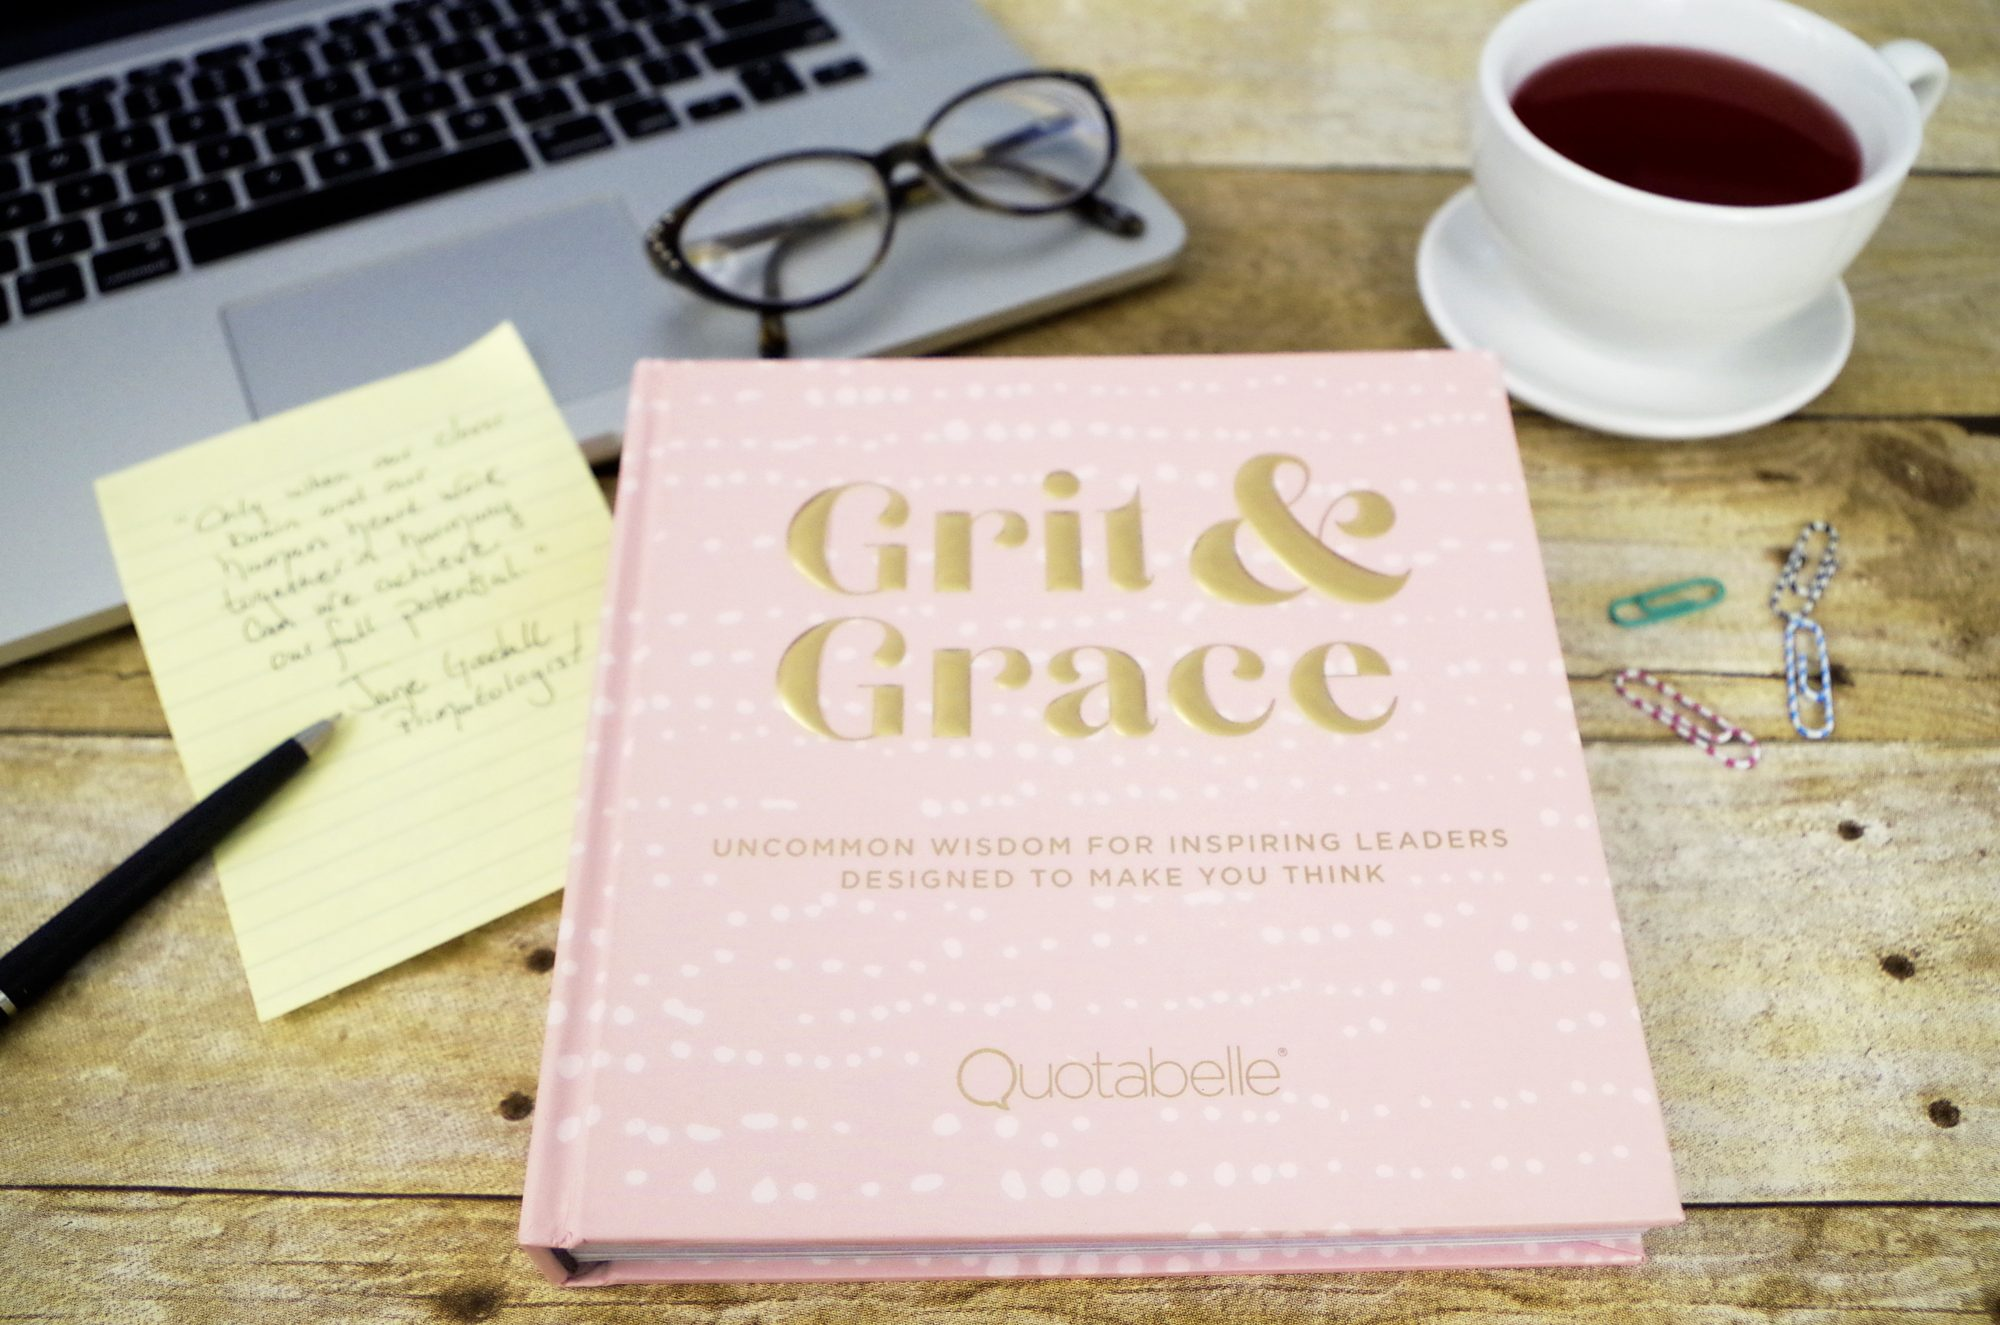 Grit and Grace: Uncommon Wisdom for Inspiring Leaders Designed to Make You Think